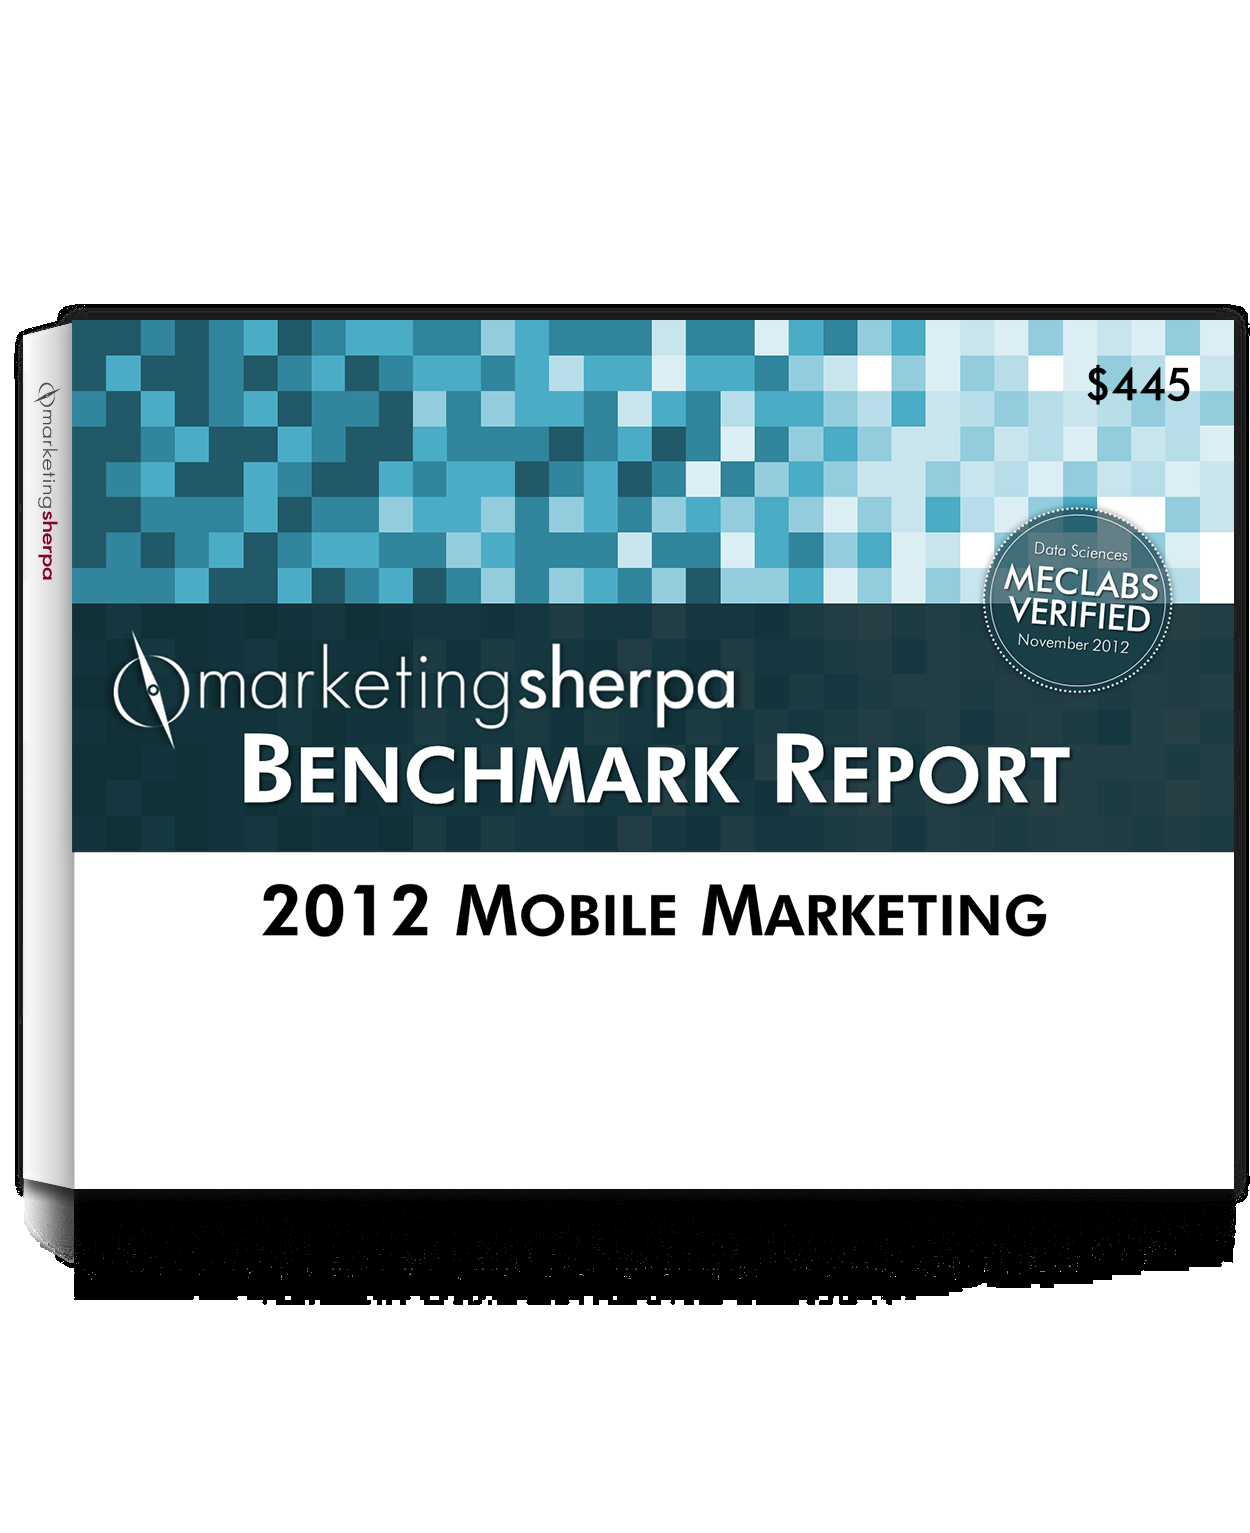 Fax form to: 401-633-6519 Launch Special - Save $100 YES! I want the most recent resource available with how-to information in the new 2012 Mobile Marketing Benchmark Report.